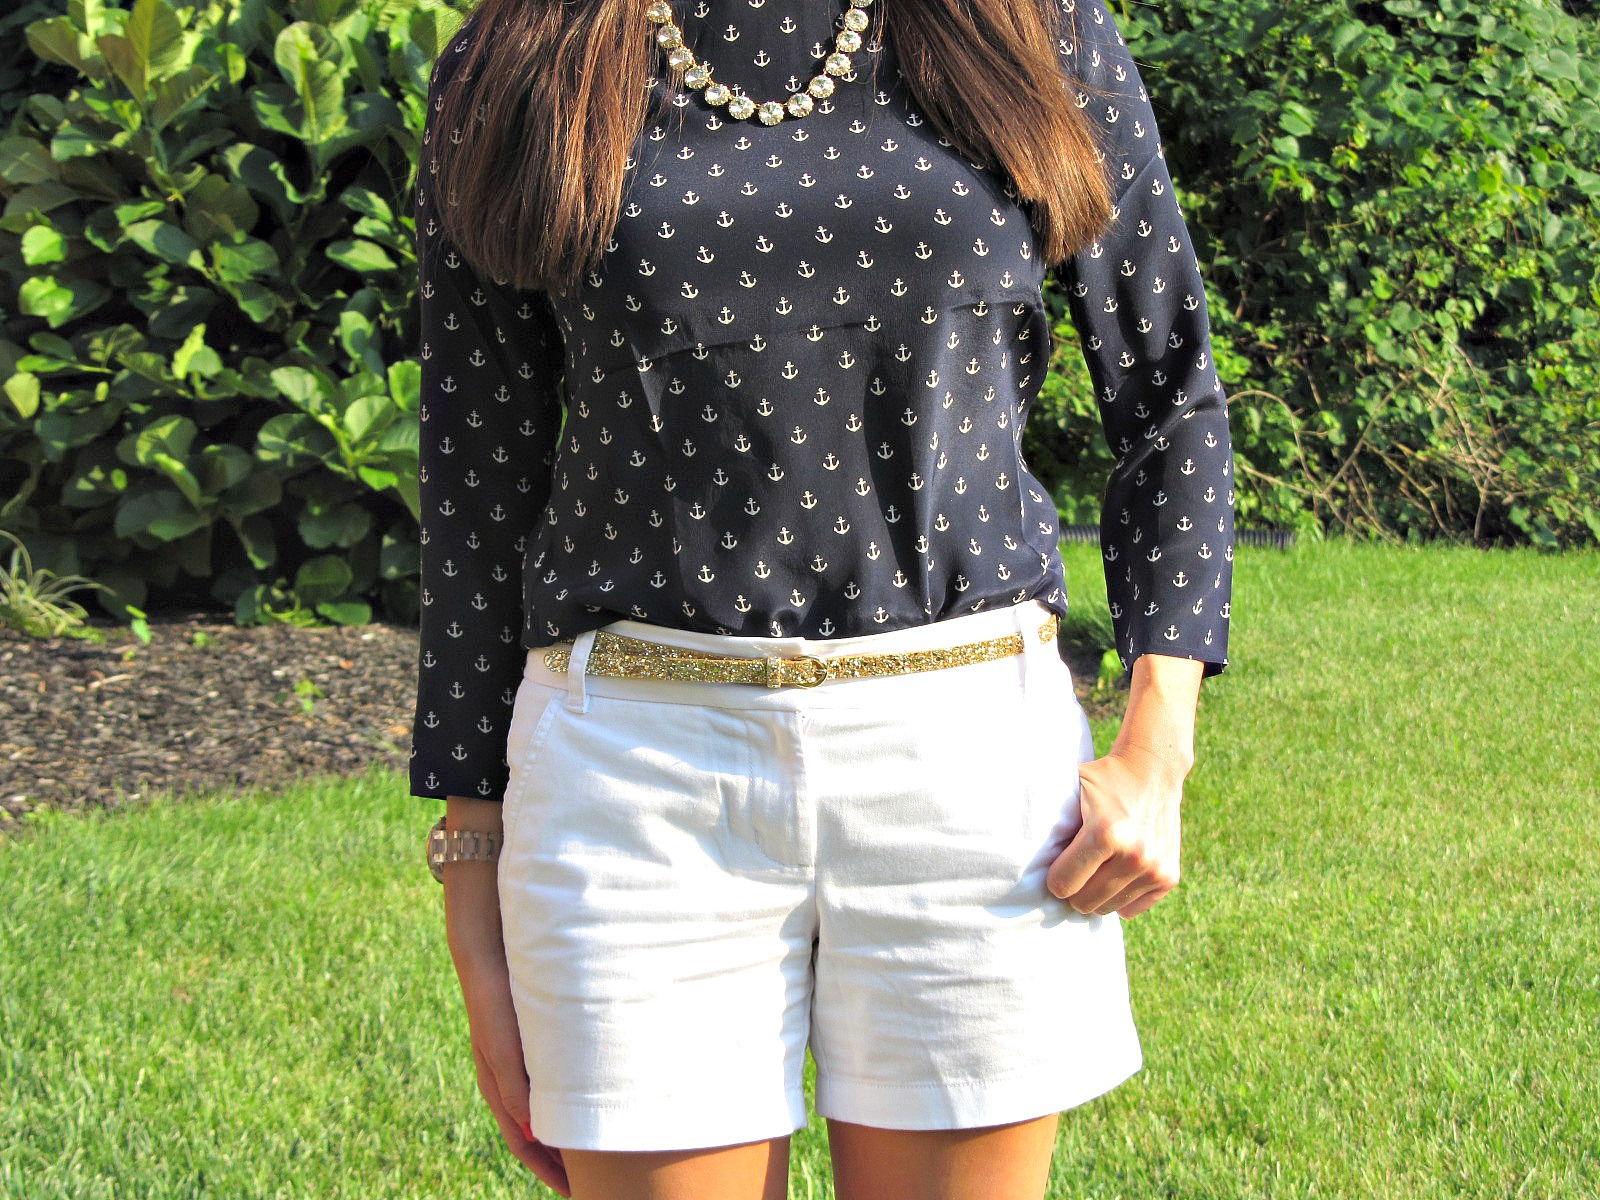 J.Crew Silk Anchor Blouse, J.Crew White Chino Short